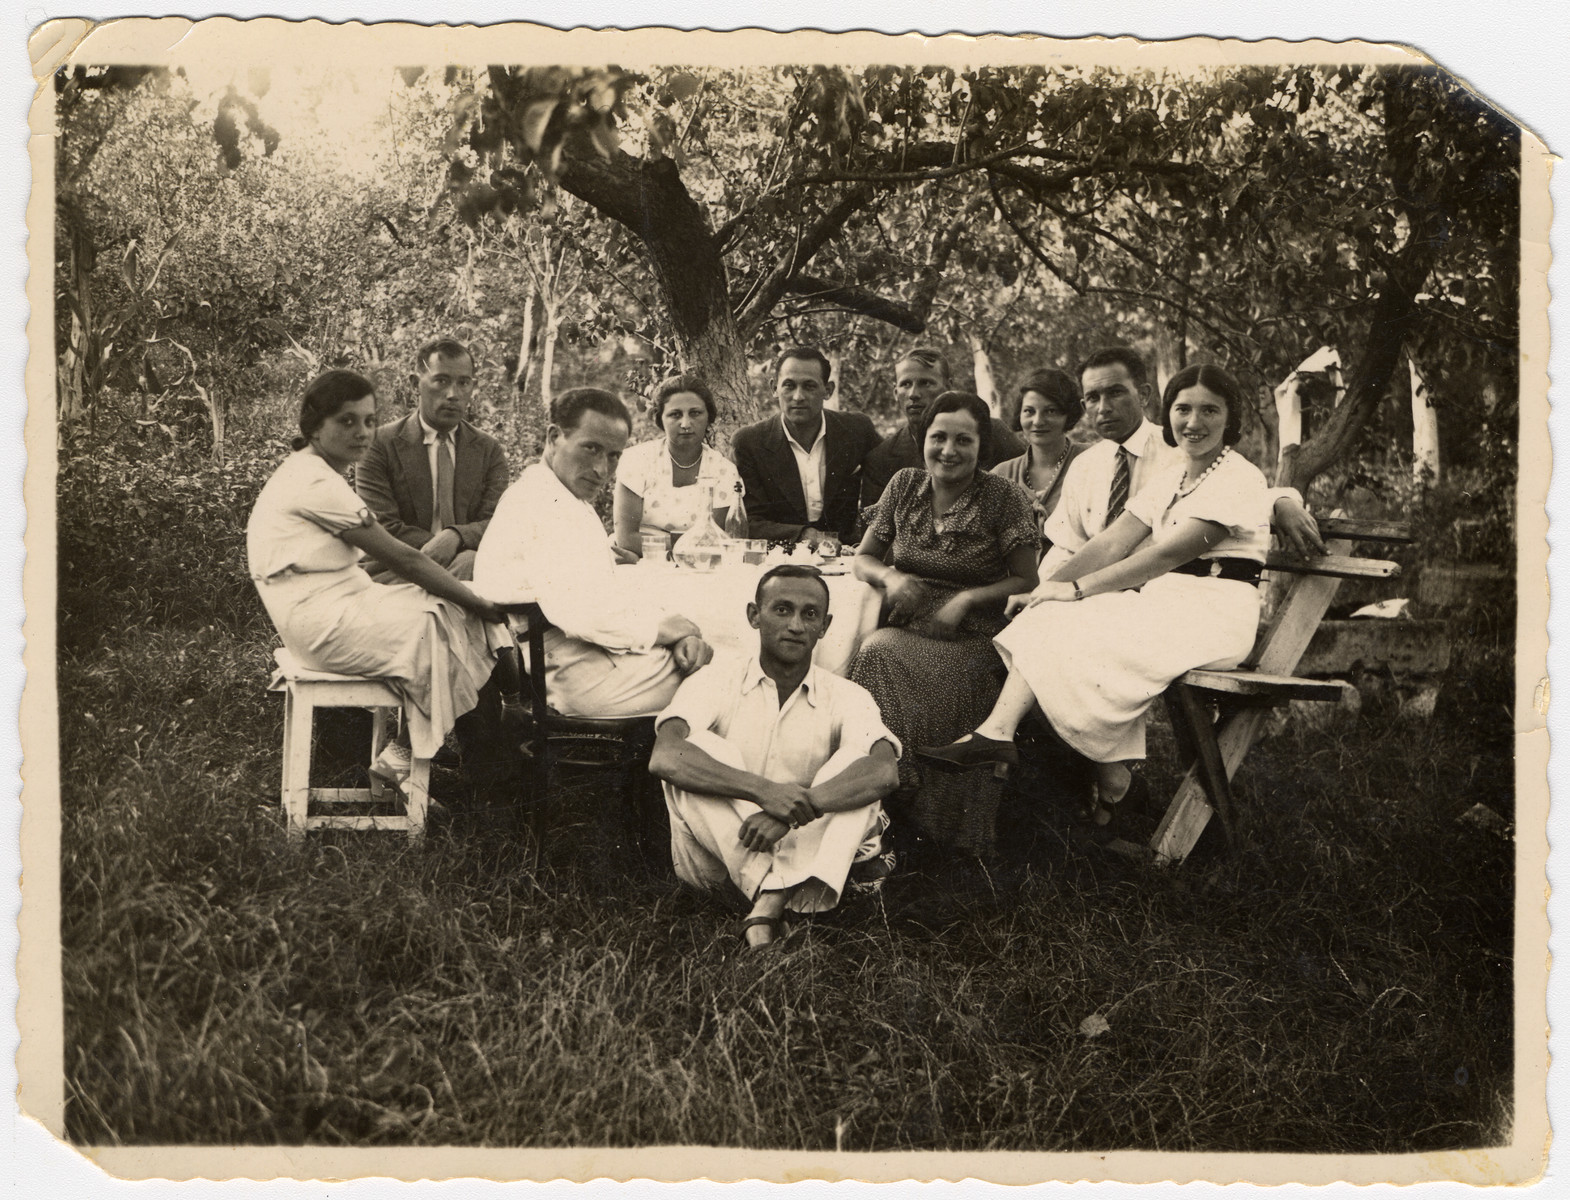 Prewar portrait of a group of family and friends sitting by a table outside.  Isaac Litman is pictured in the in dark jacket.  His wife Olga Litman is in the middle. On the front right is Lusiek who was in Judenrat in Zales and helped obtain false papers.